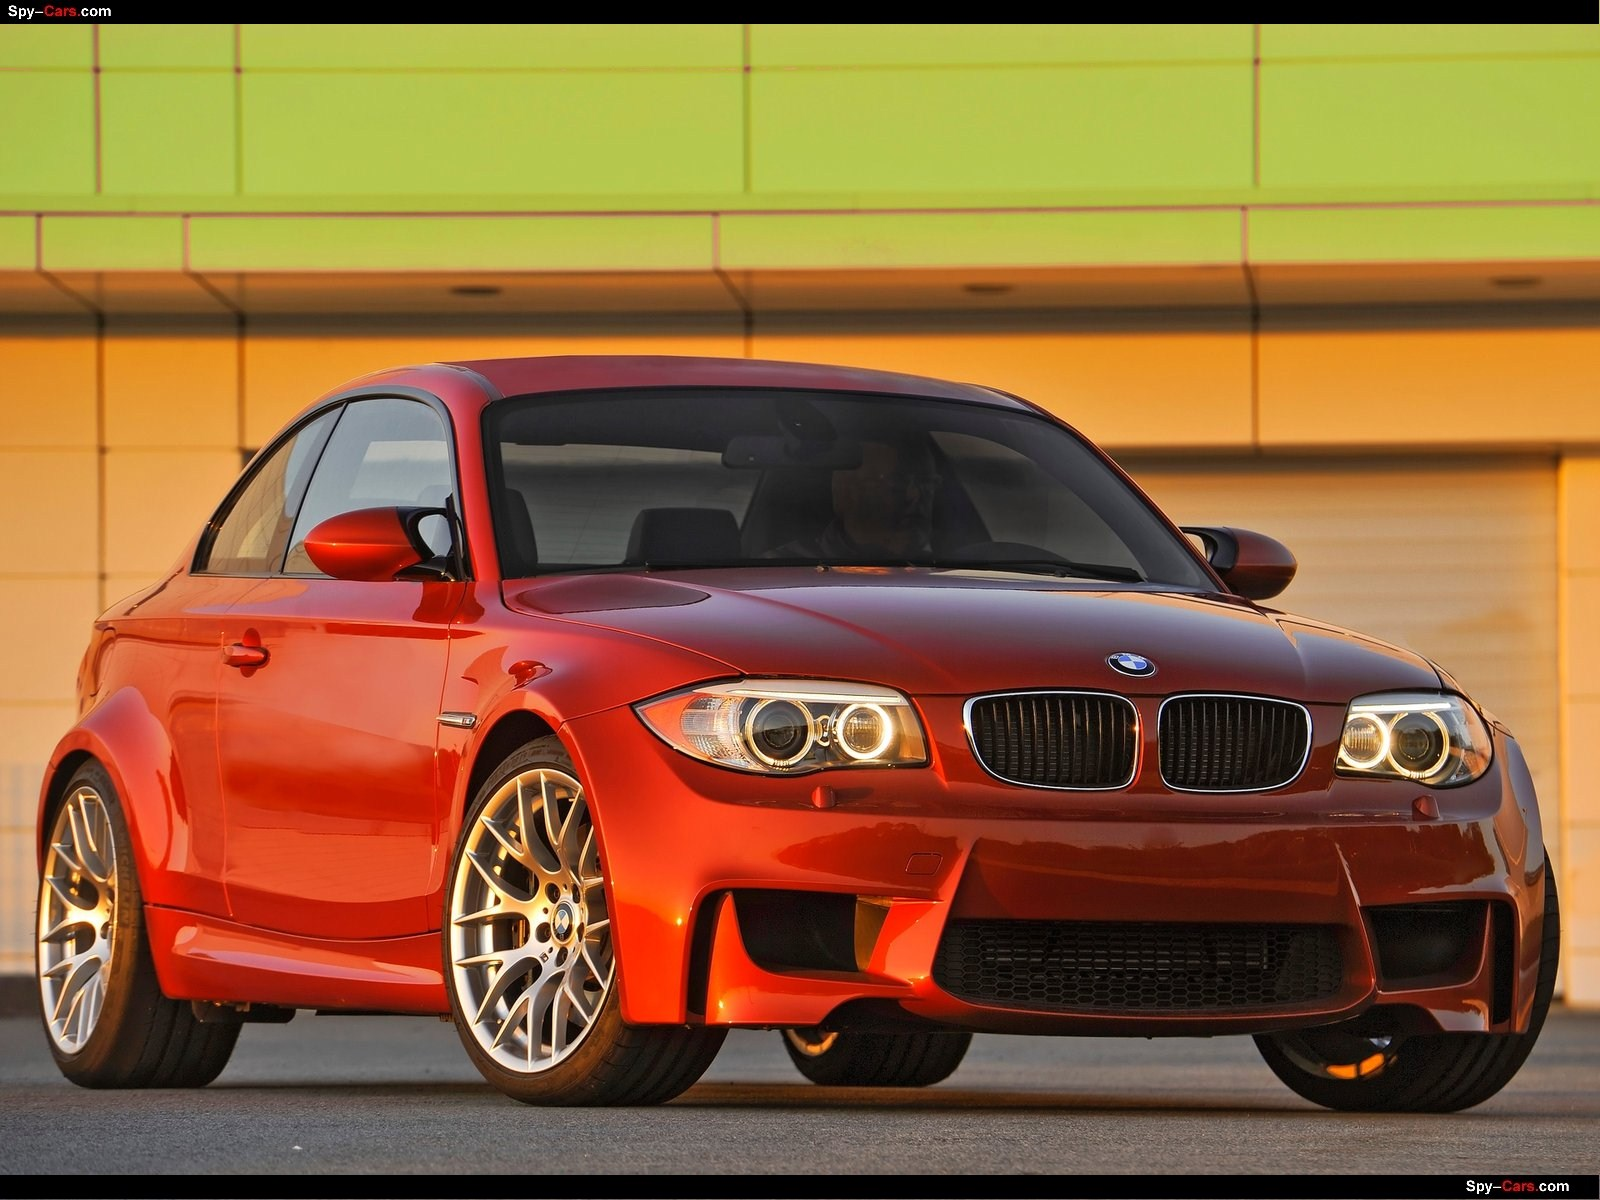 2019 bmw 1 series m coupe us version car photos catalog 2018. Black Bedroom Furniture Sets. Home Design Ideas